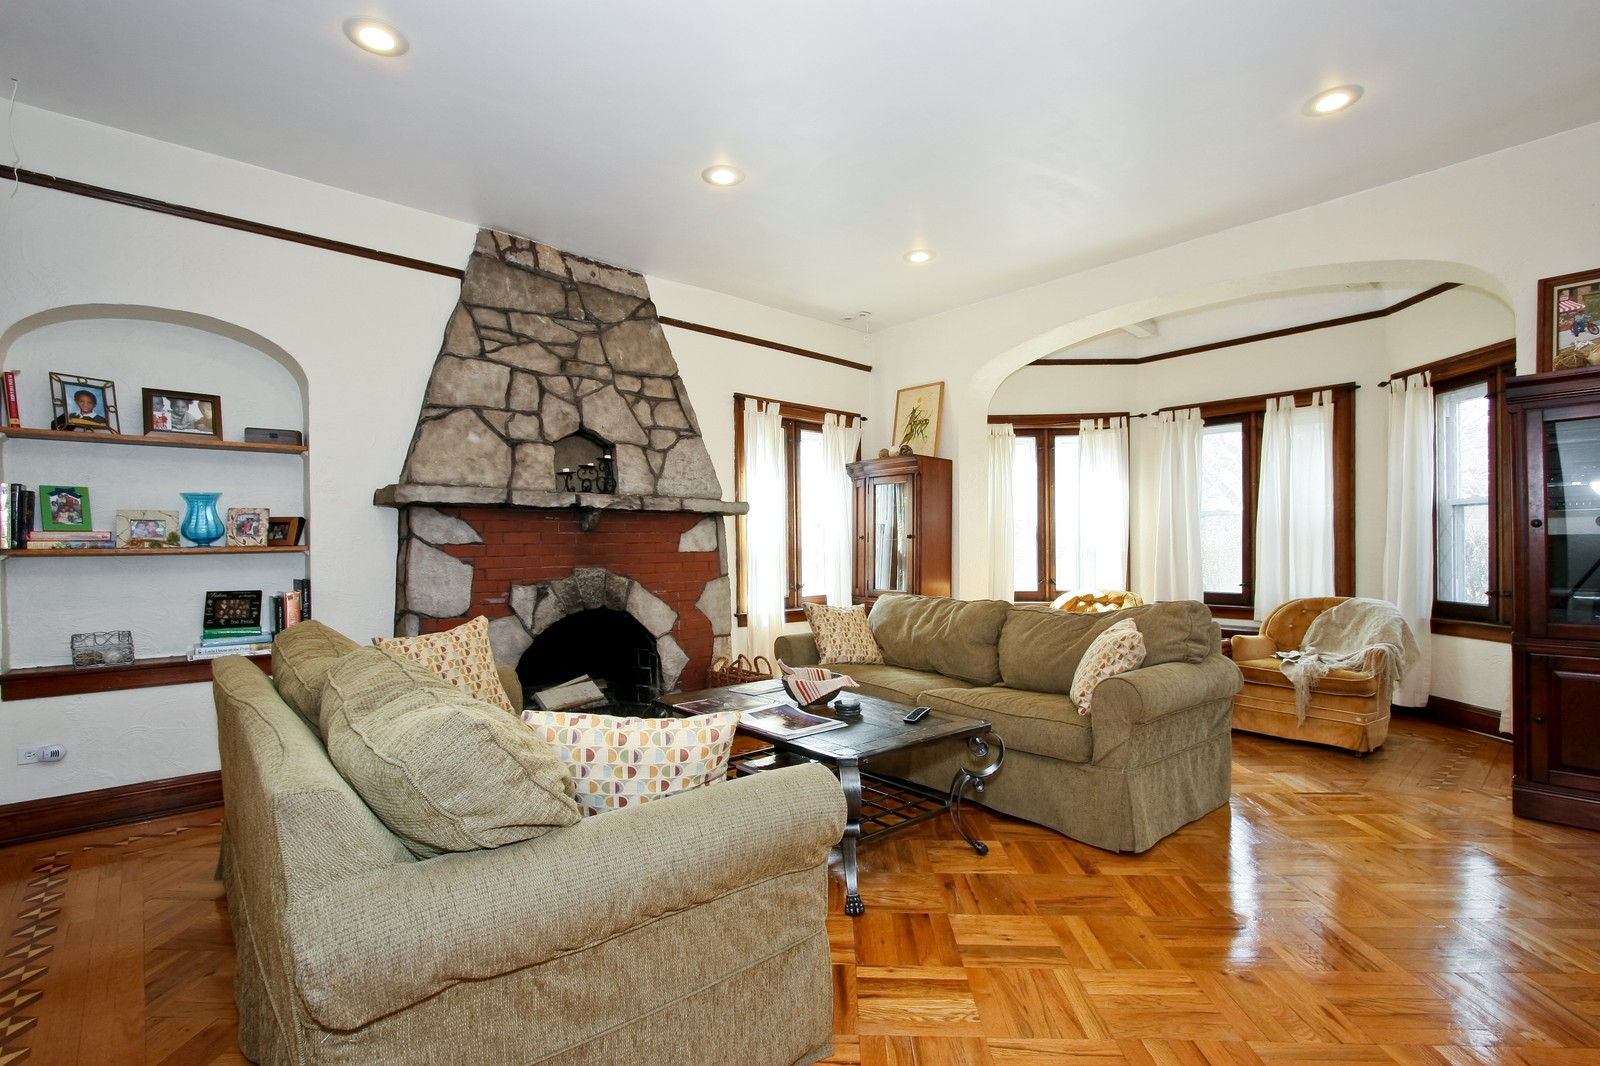 Real Estate Photography - 9001 S. Bell Ave., Chicago, IL, 60643 - Living Room